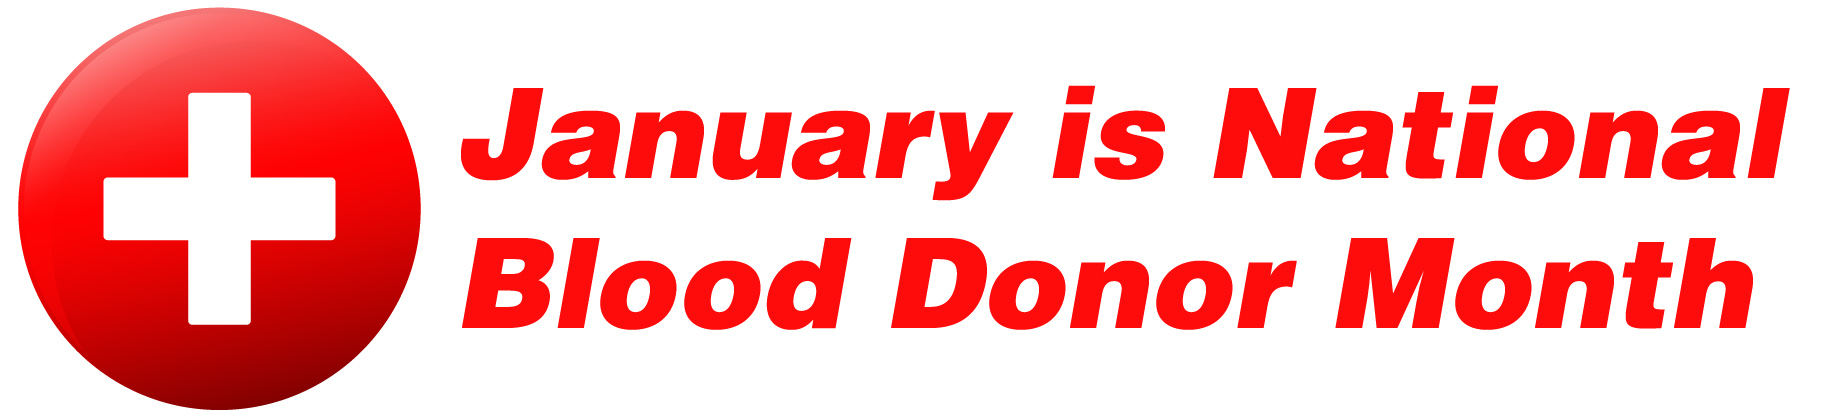 National-Blood-Donor-Month.jpg